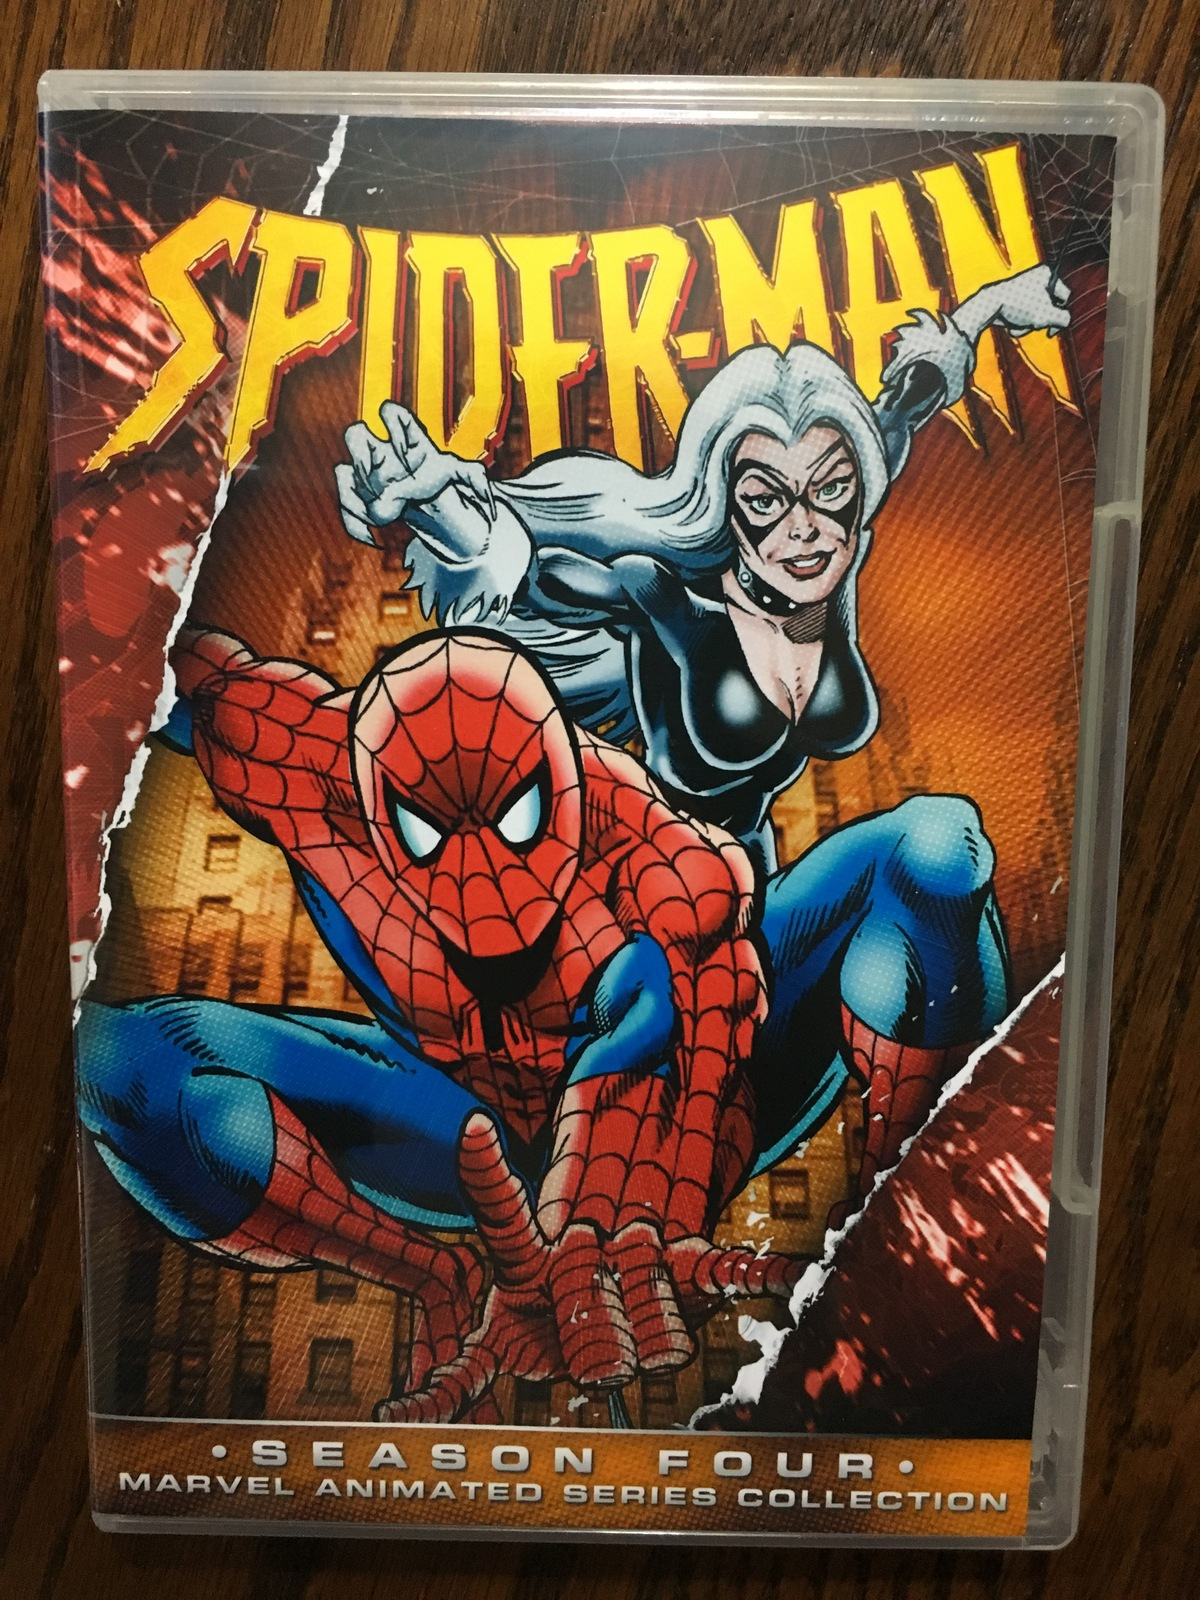 Spider-Man 1994 Series Season 4 DVD